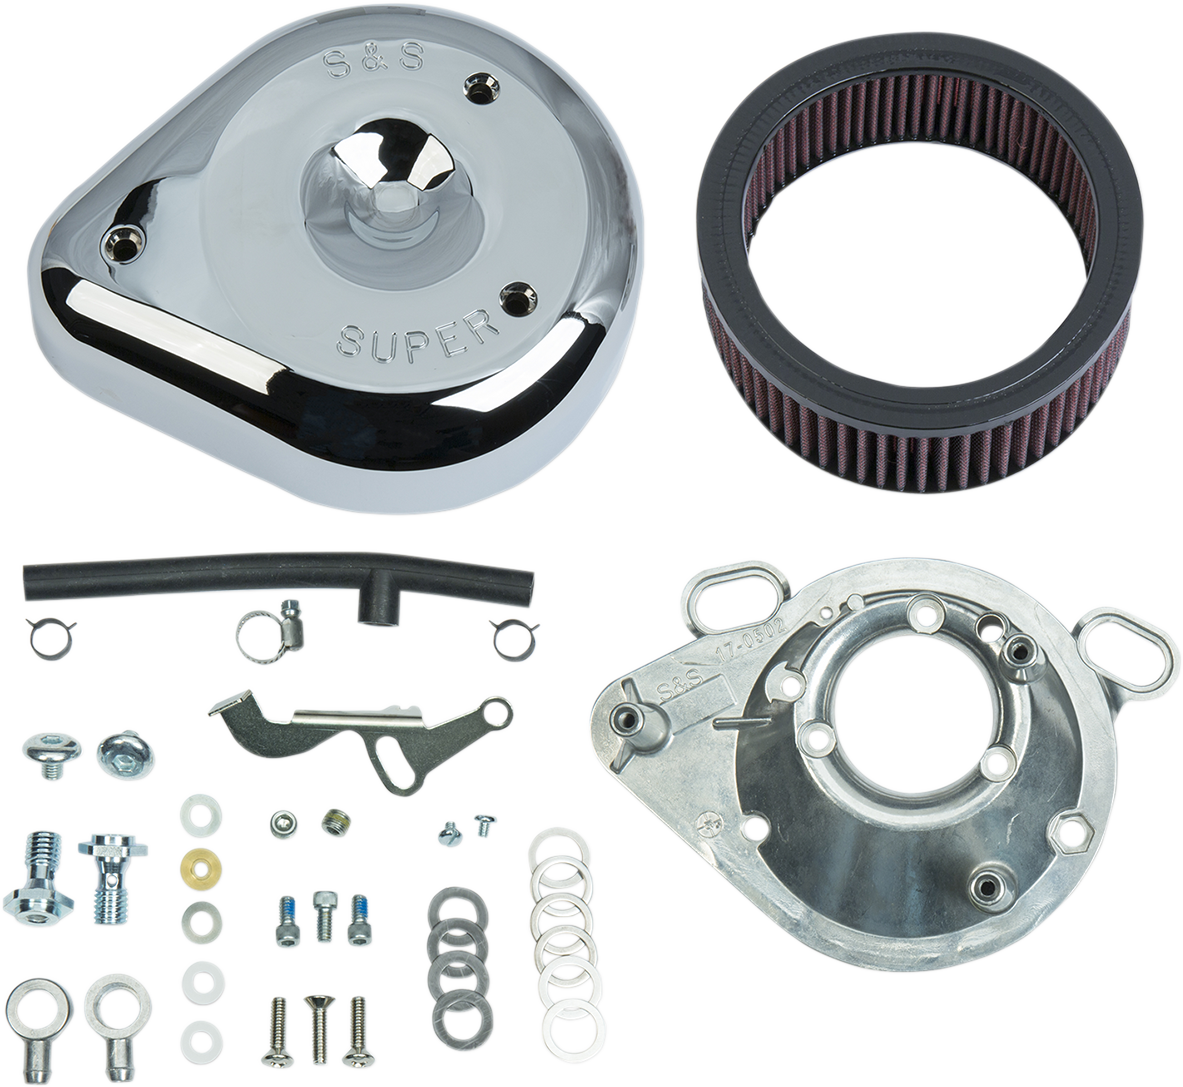 S&S Cycle Chrome Super E&G Air Cleaner Kit for 93-00 Harley Dyna Touring Softail